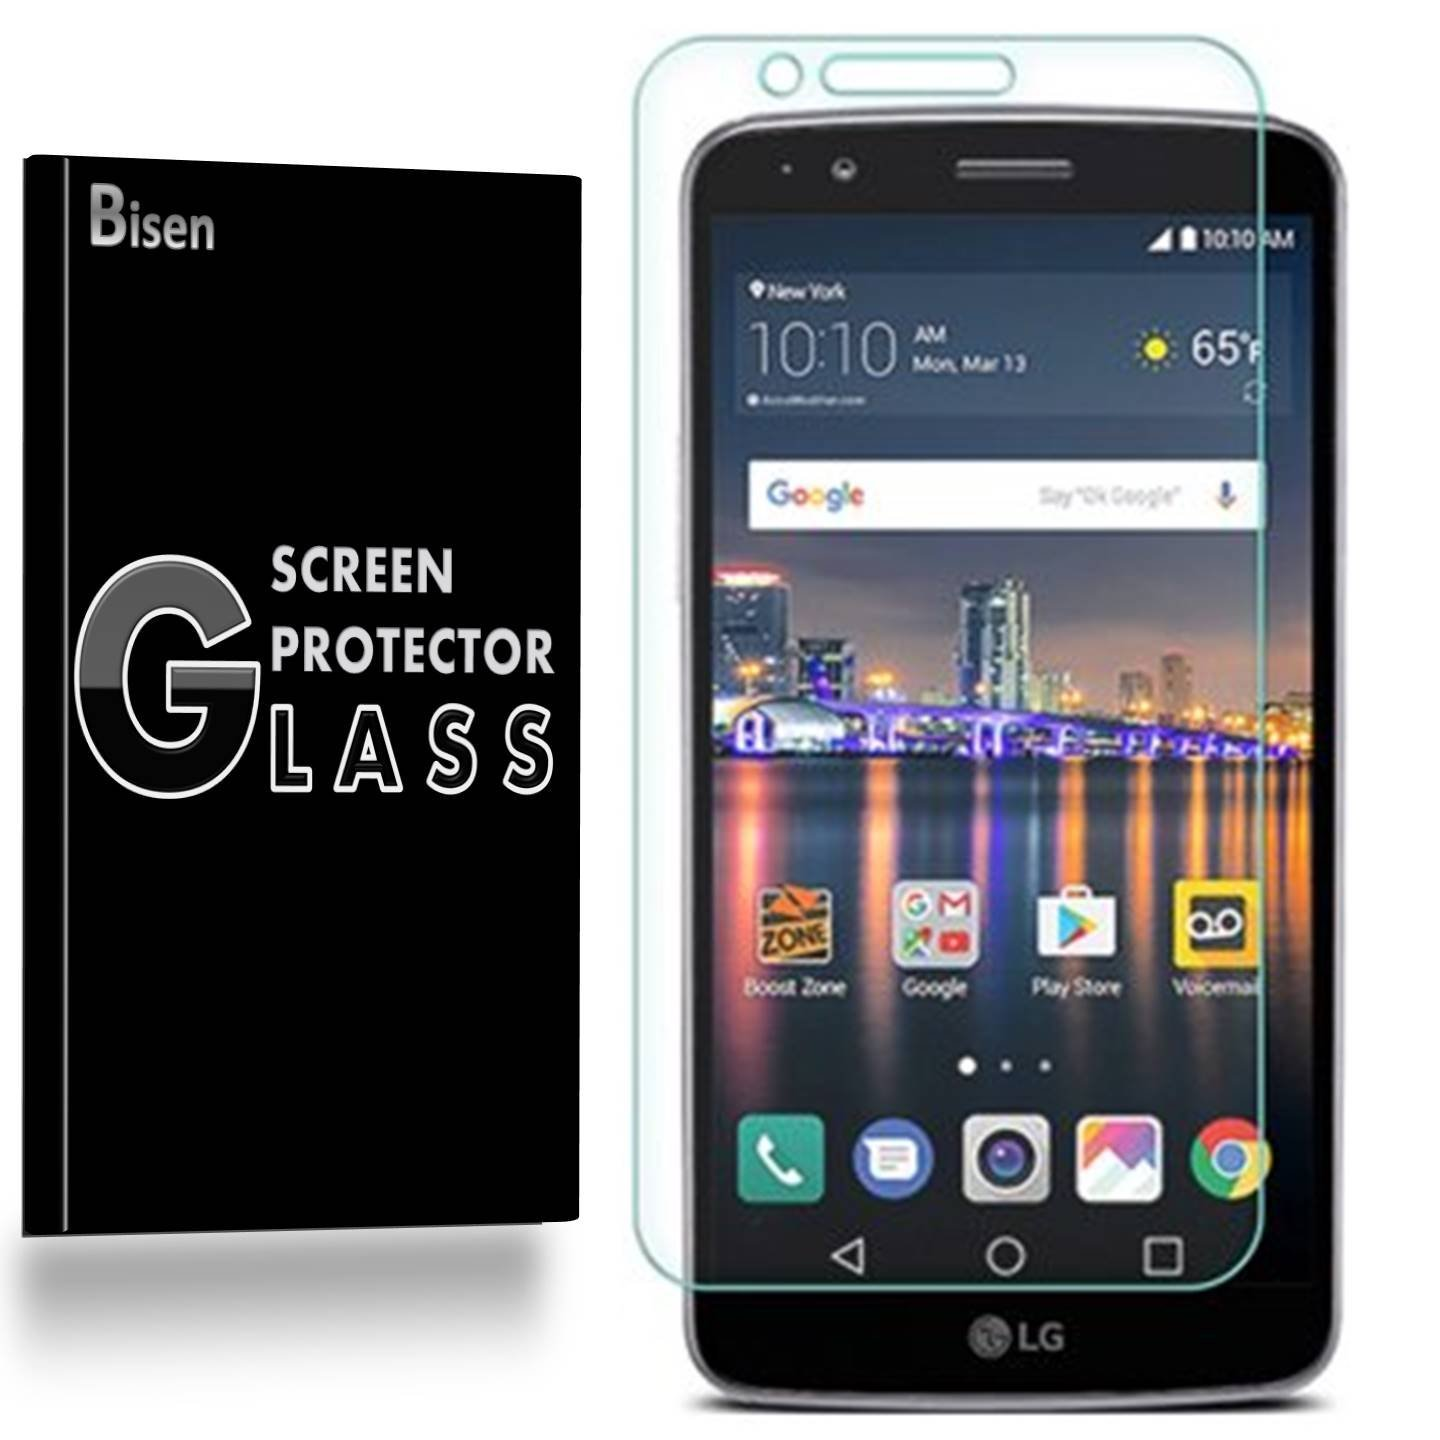 LG Stylo 3 Plus (2017 Release) [1-Pack, BISEN] 9H Tempered Glass Screen Protector, Anti-Scratch, Anti-Shock, Shatterproof, Bubble Free